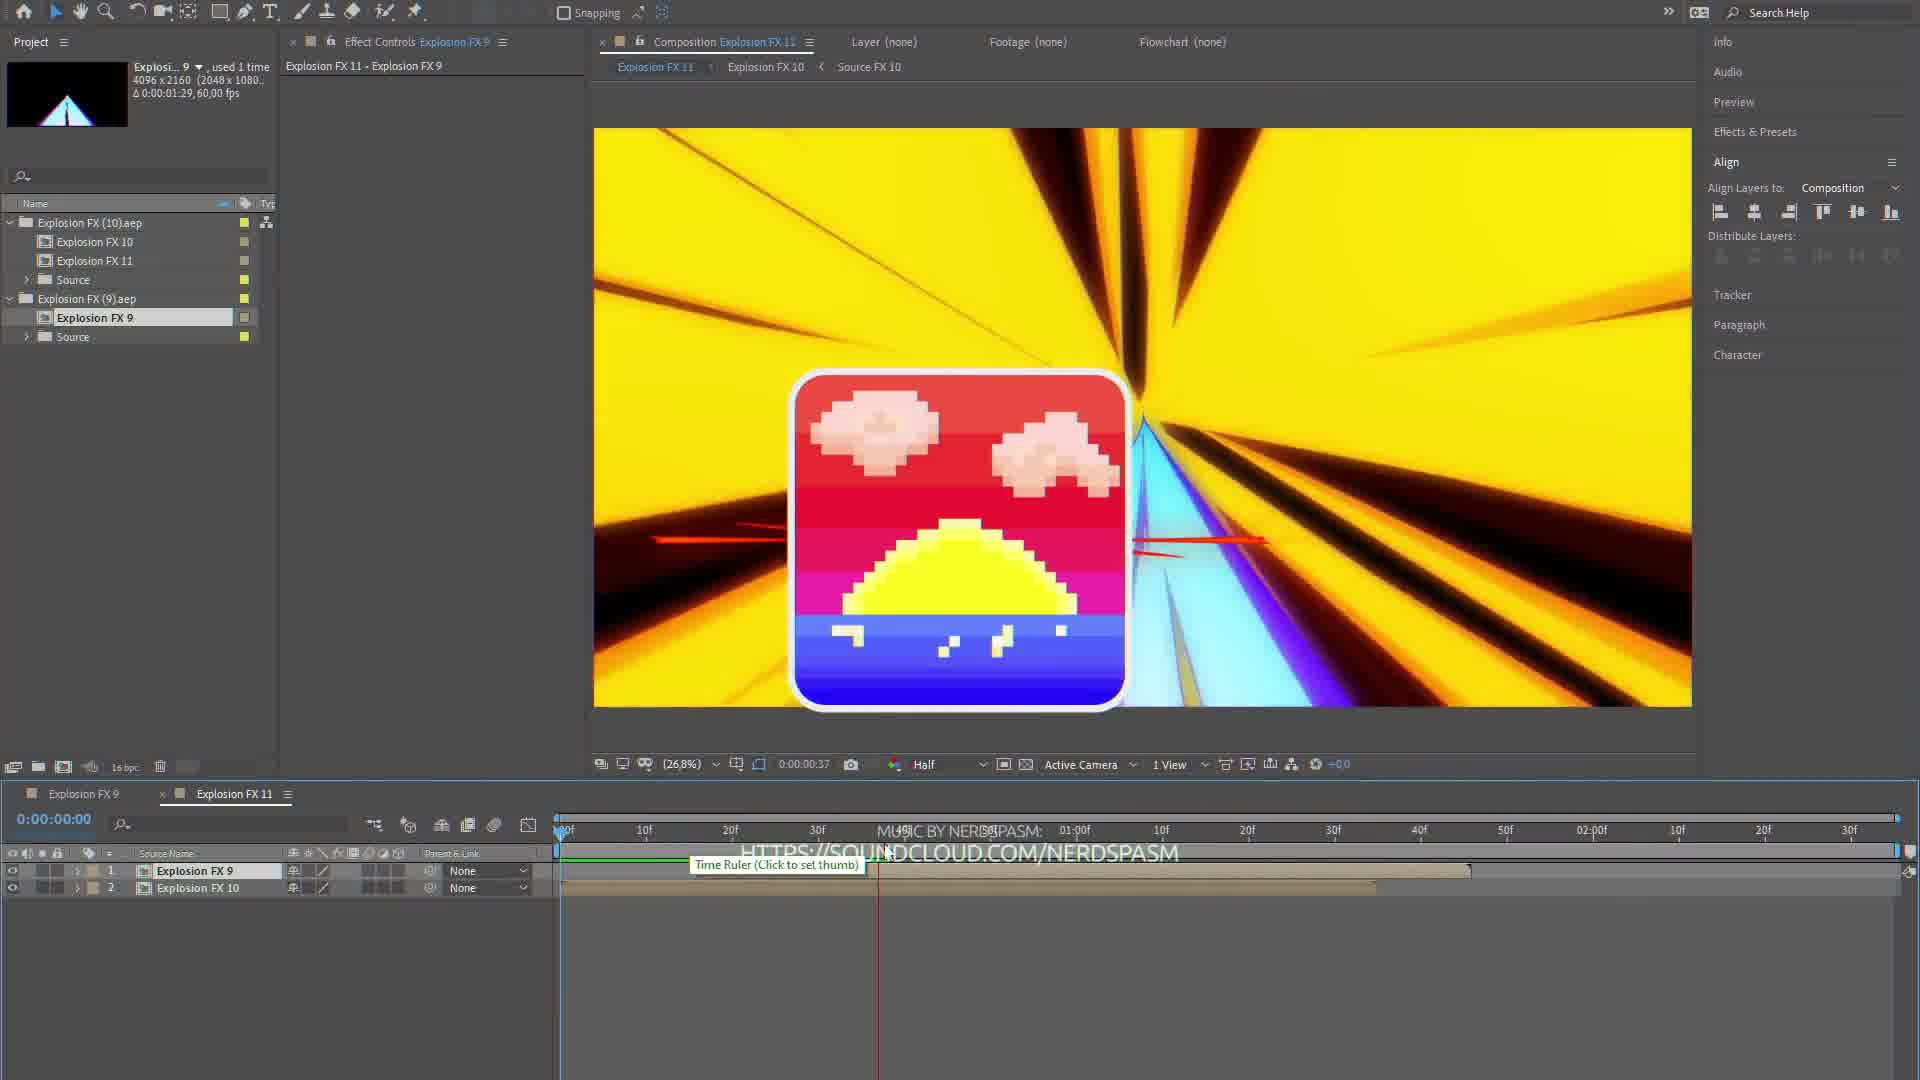 Toonhead (Explosion FX Set 1) Videohive 26141570 After Effects Image 11